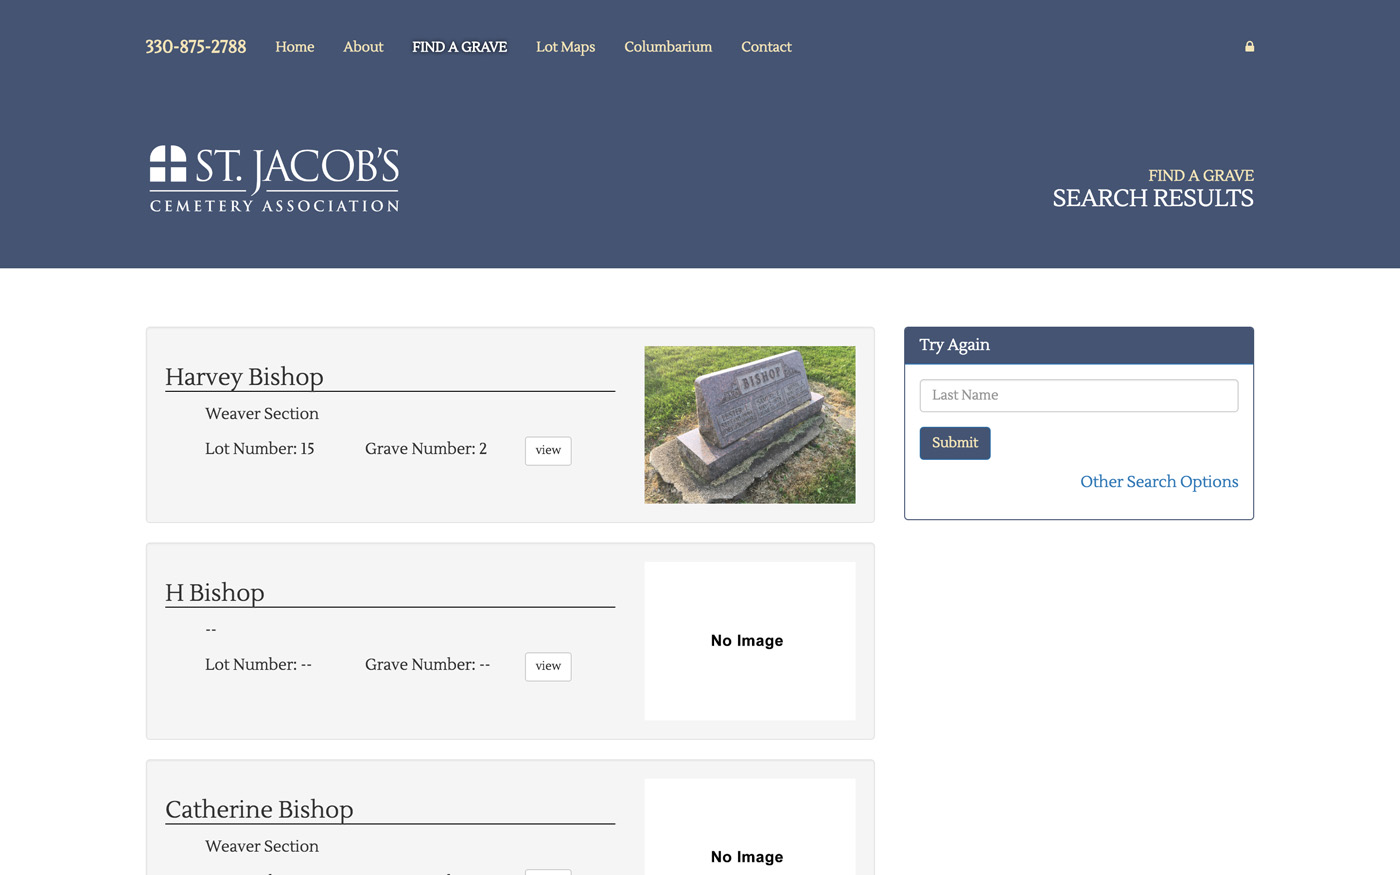 st-jacobs-cemetery-search-page.jpg